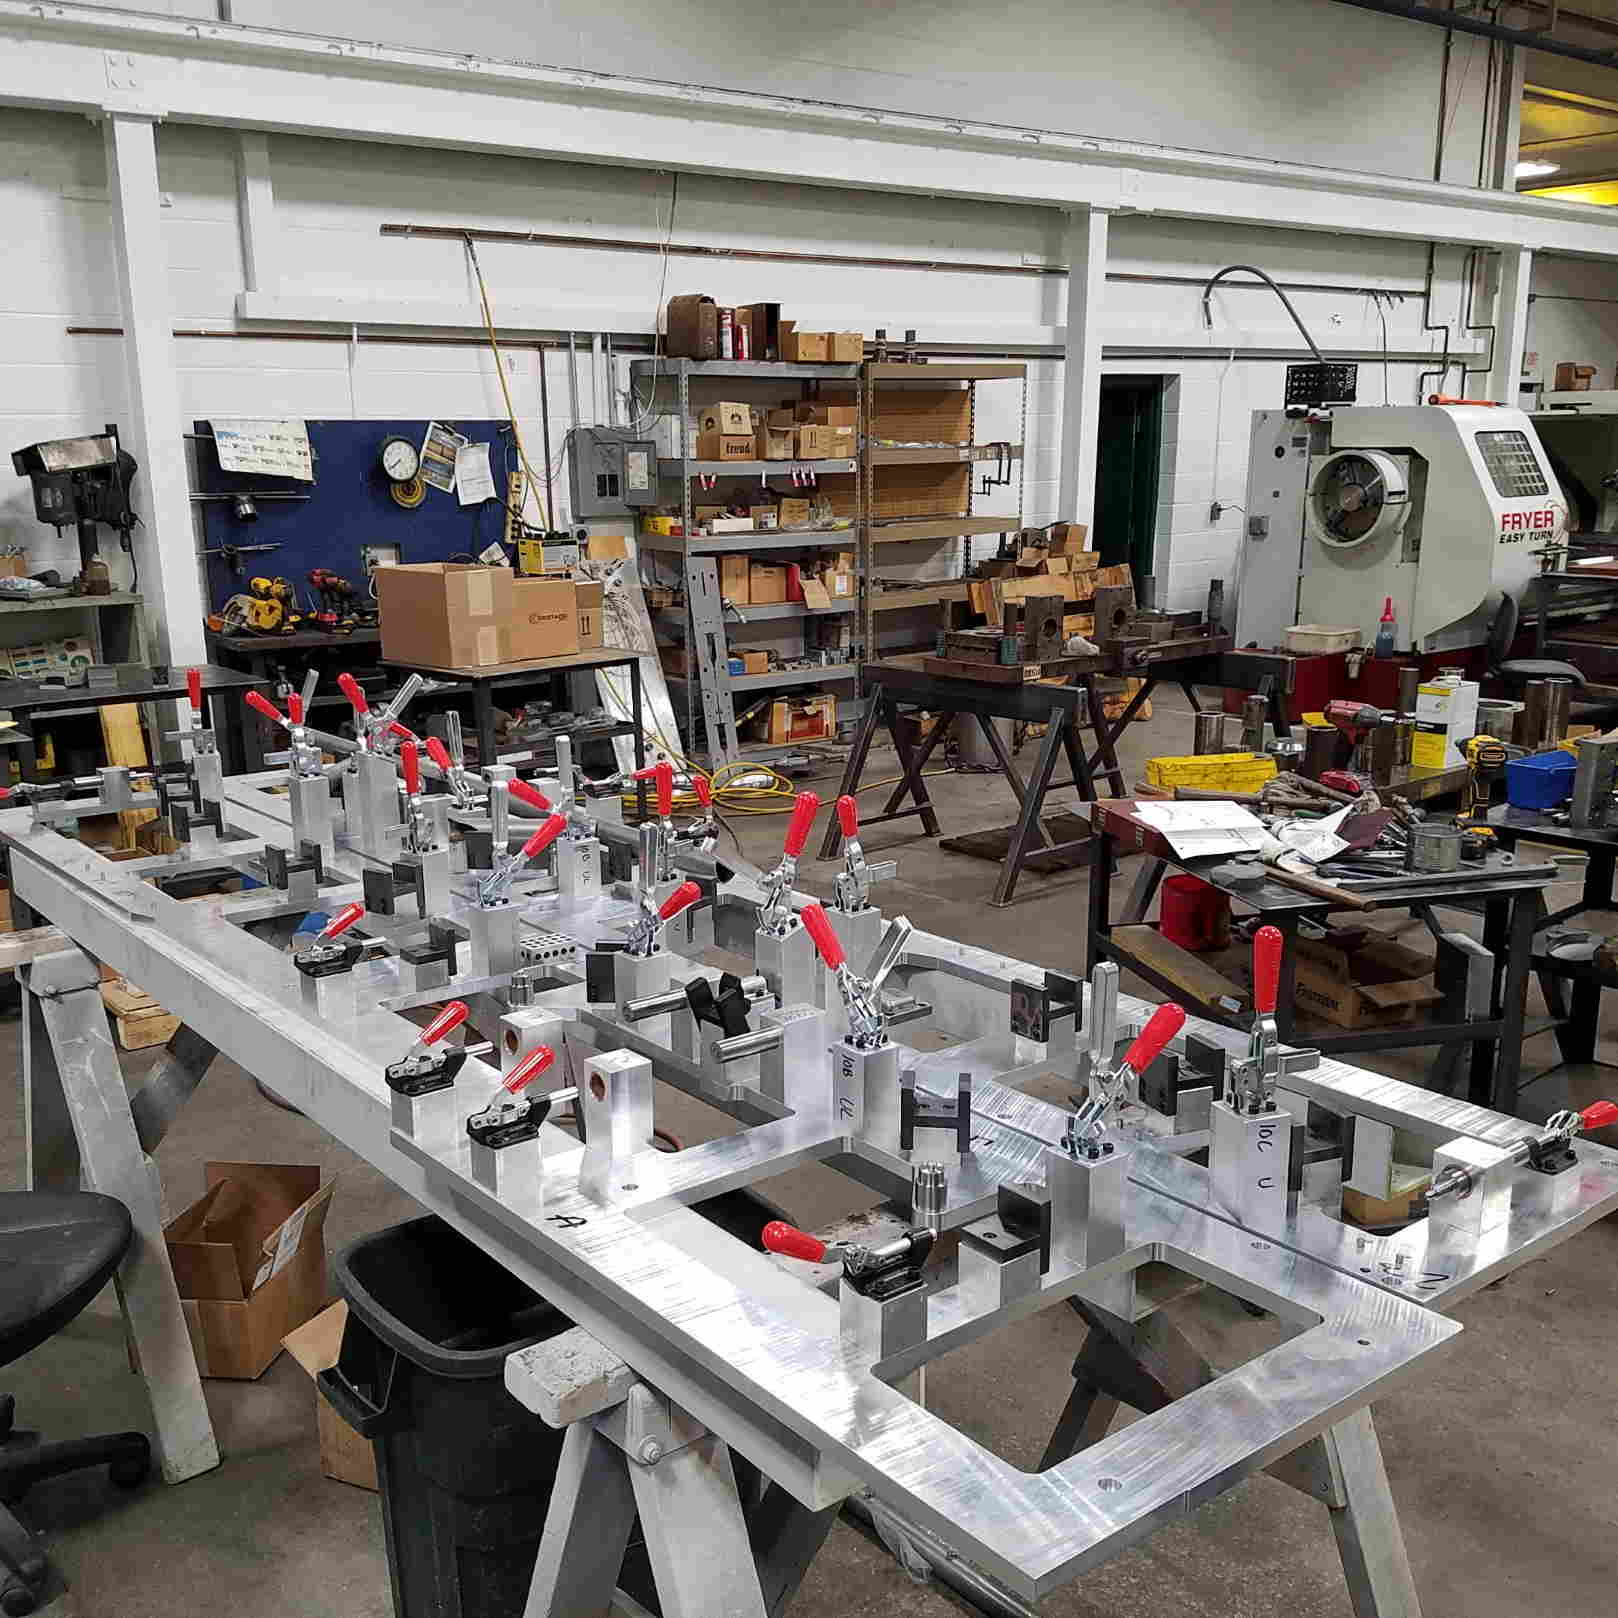 Welding Fixture in our assembly area, fixtures in foreground